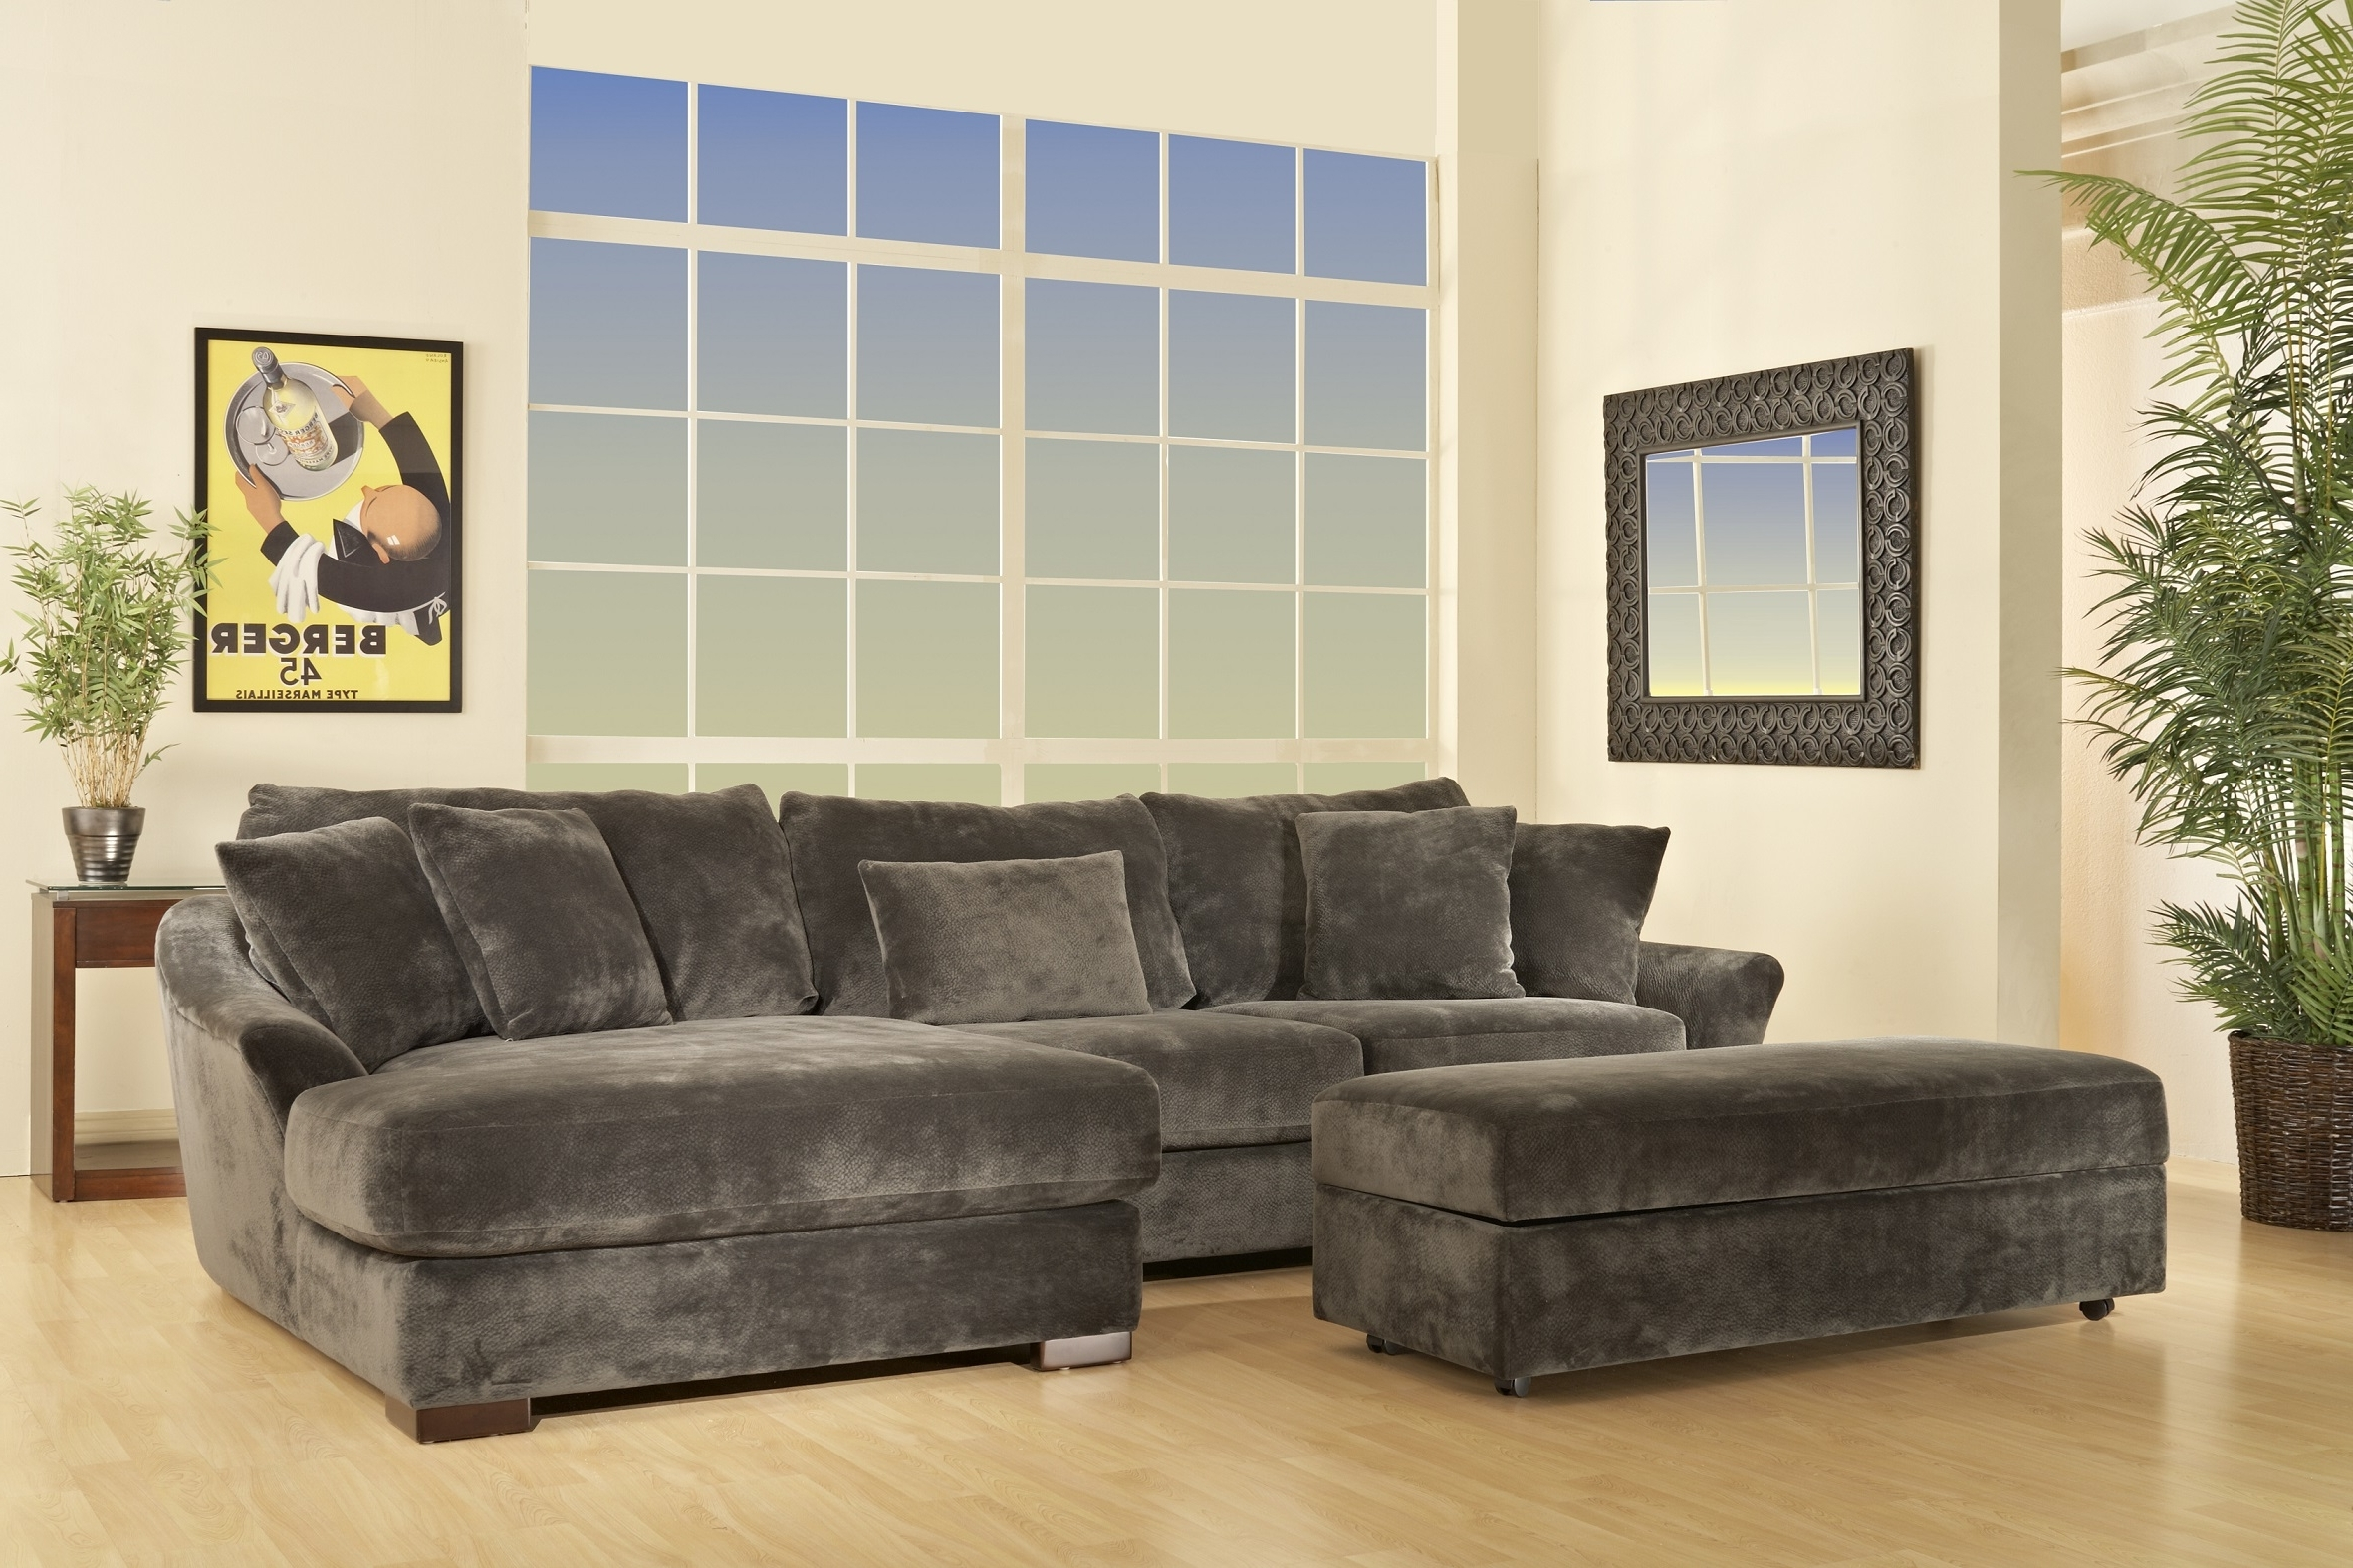 Current Sectional Sofa Design: Free Picture Sectional Sofas Atlanta Sofa  With Regard To Sectional Sofas